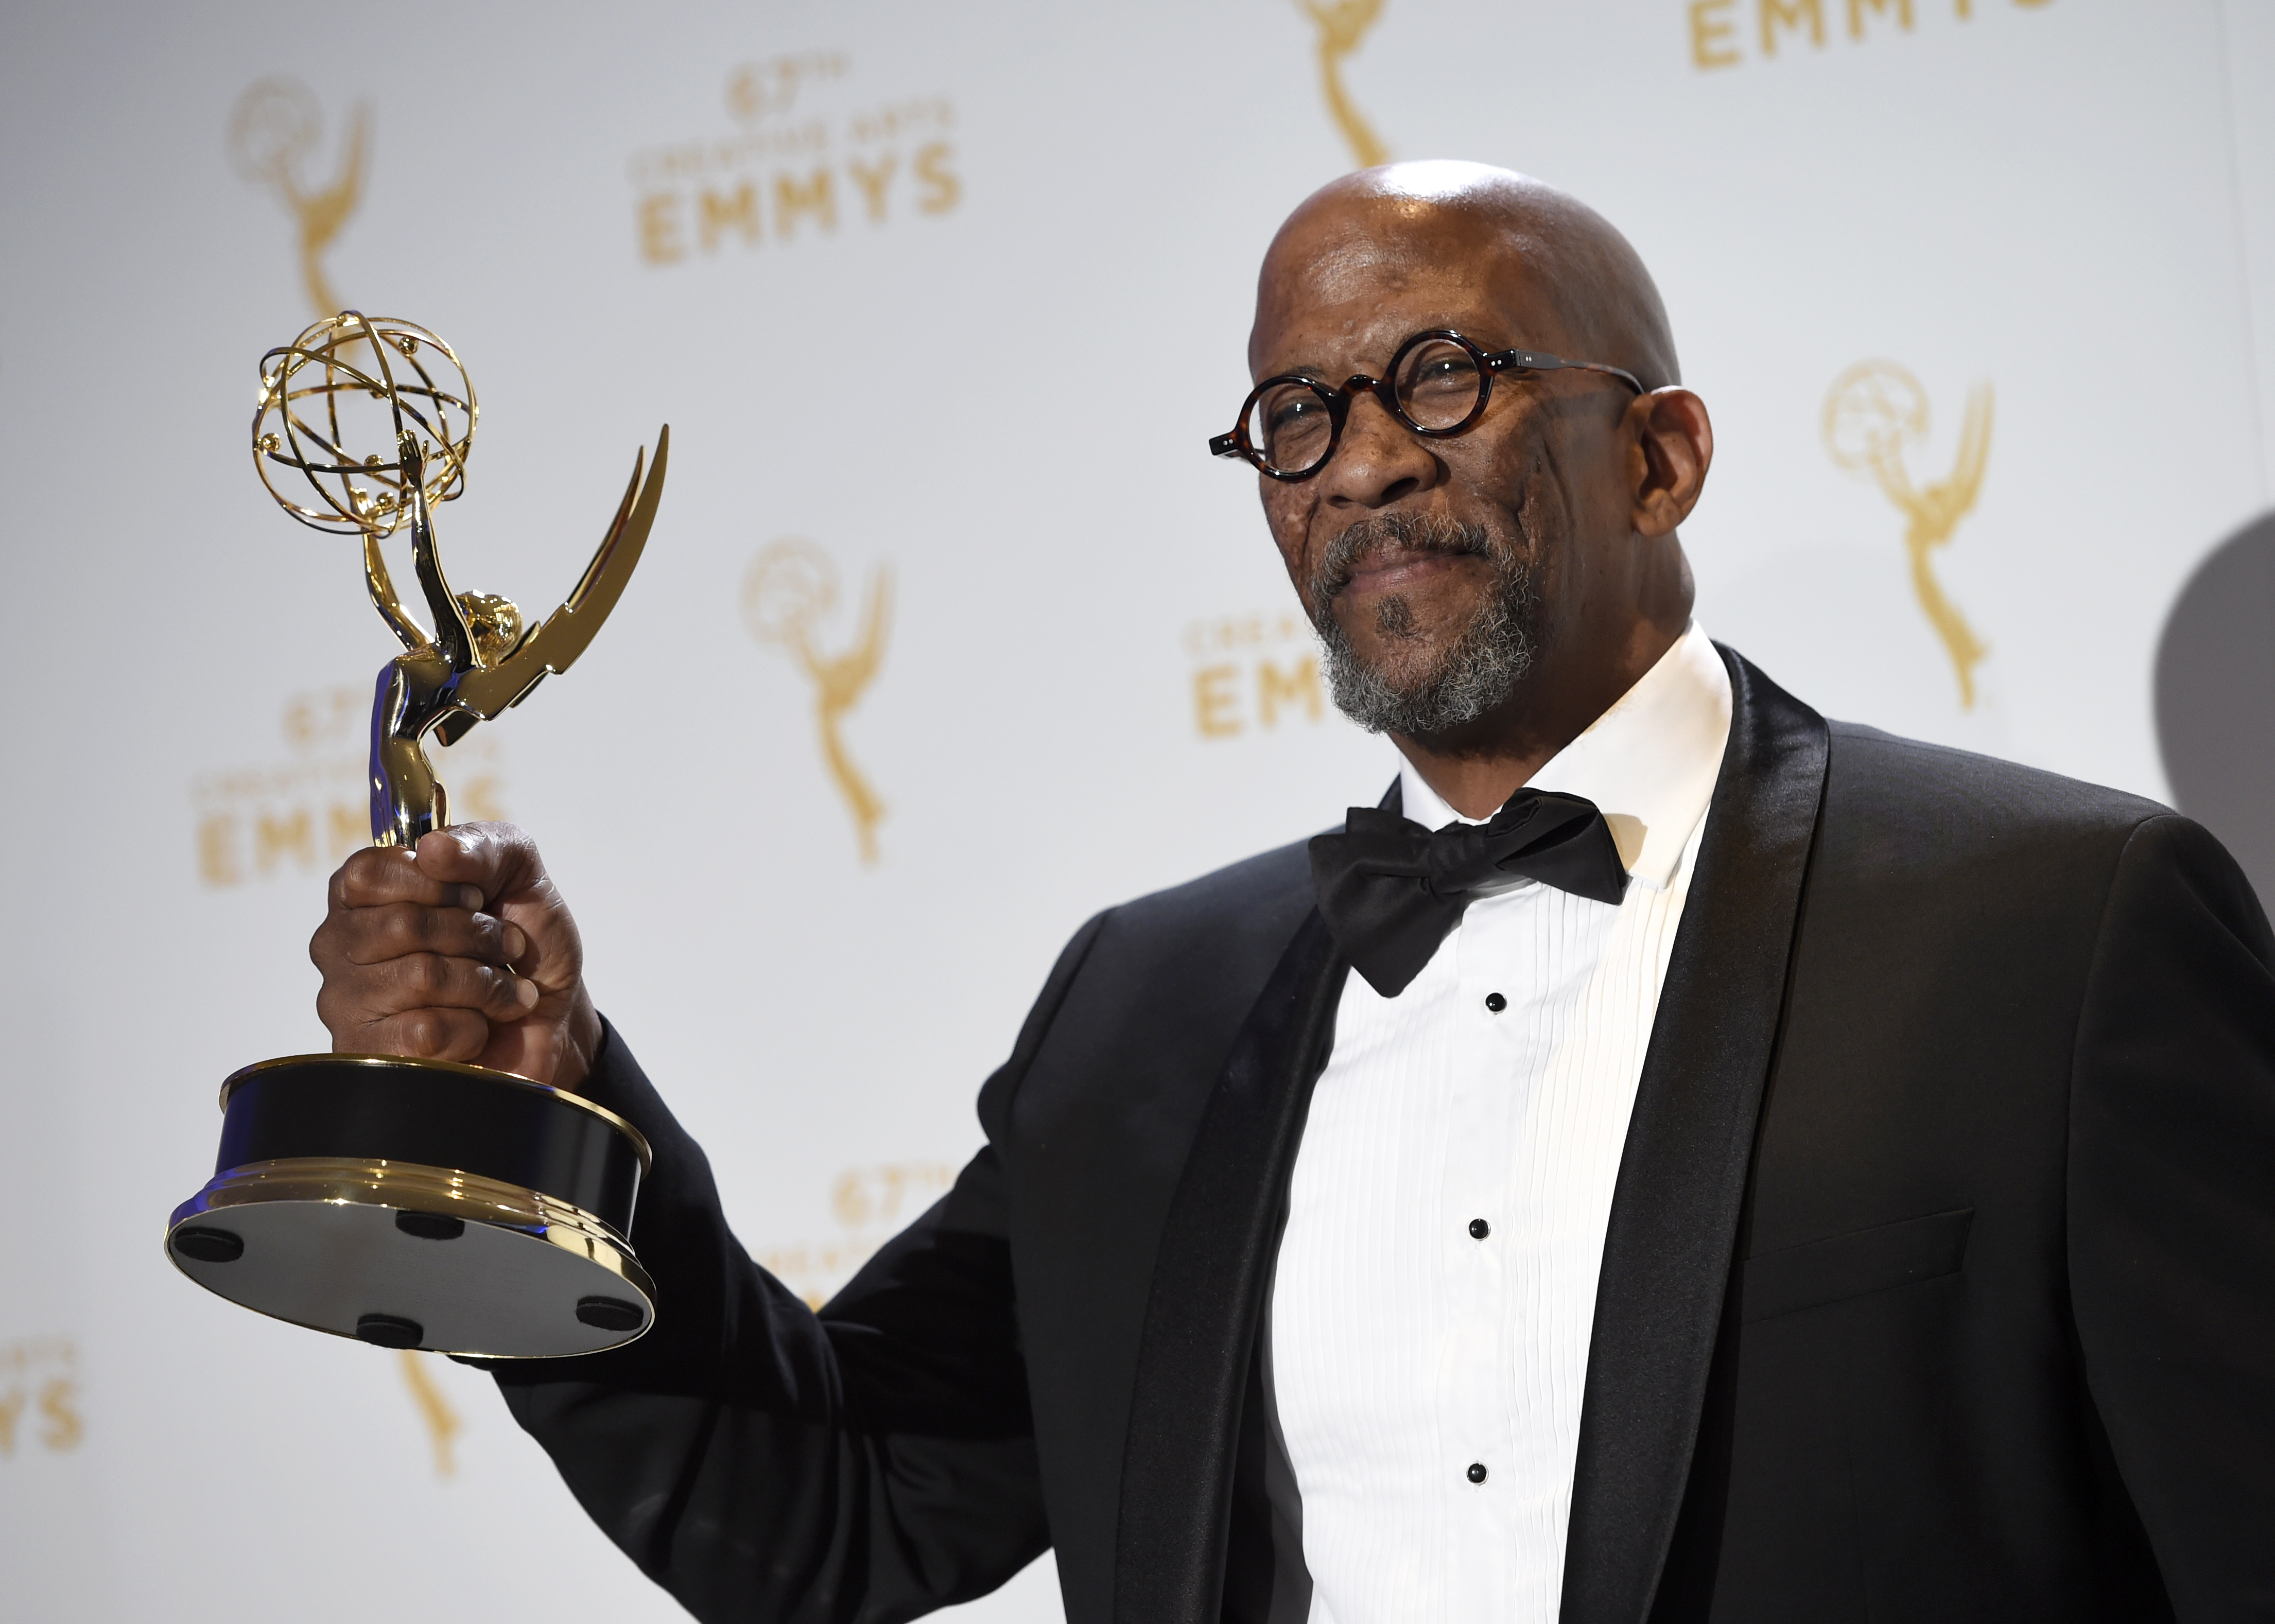 Reg E. Cathey, \'House of Cards\' and \'The Wire\' Actor, Dies at 59 ...